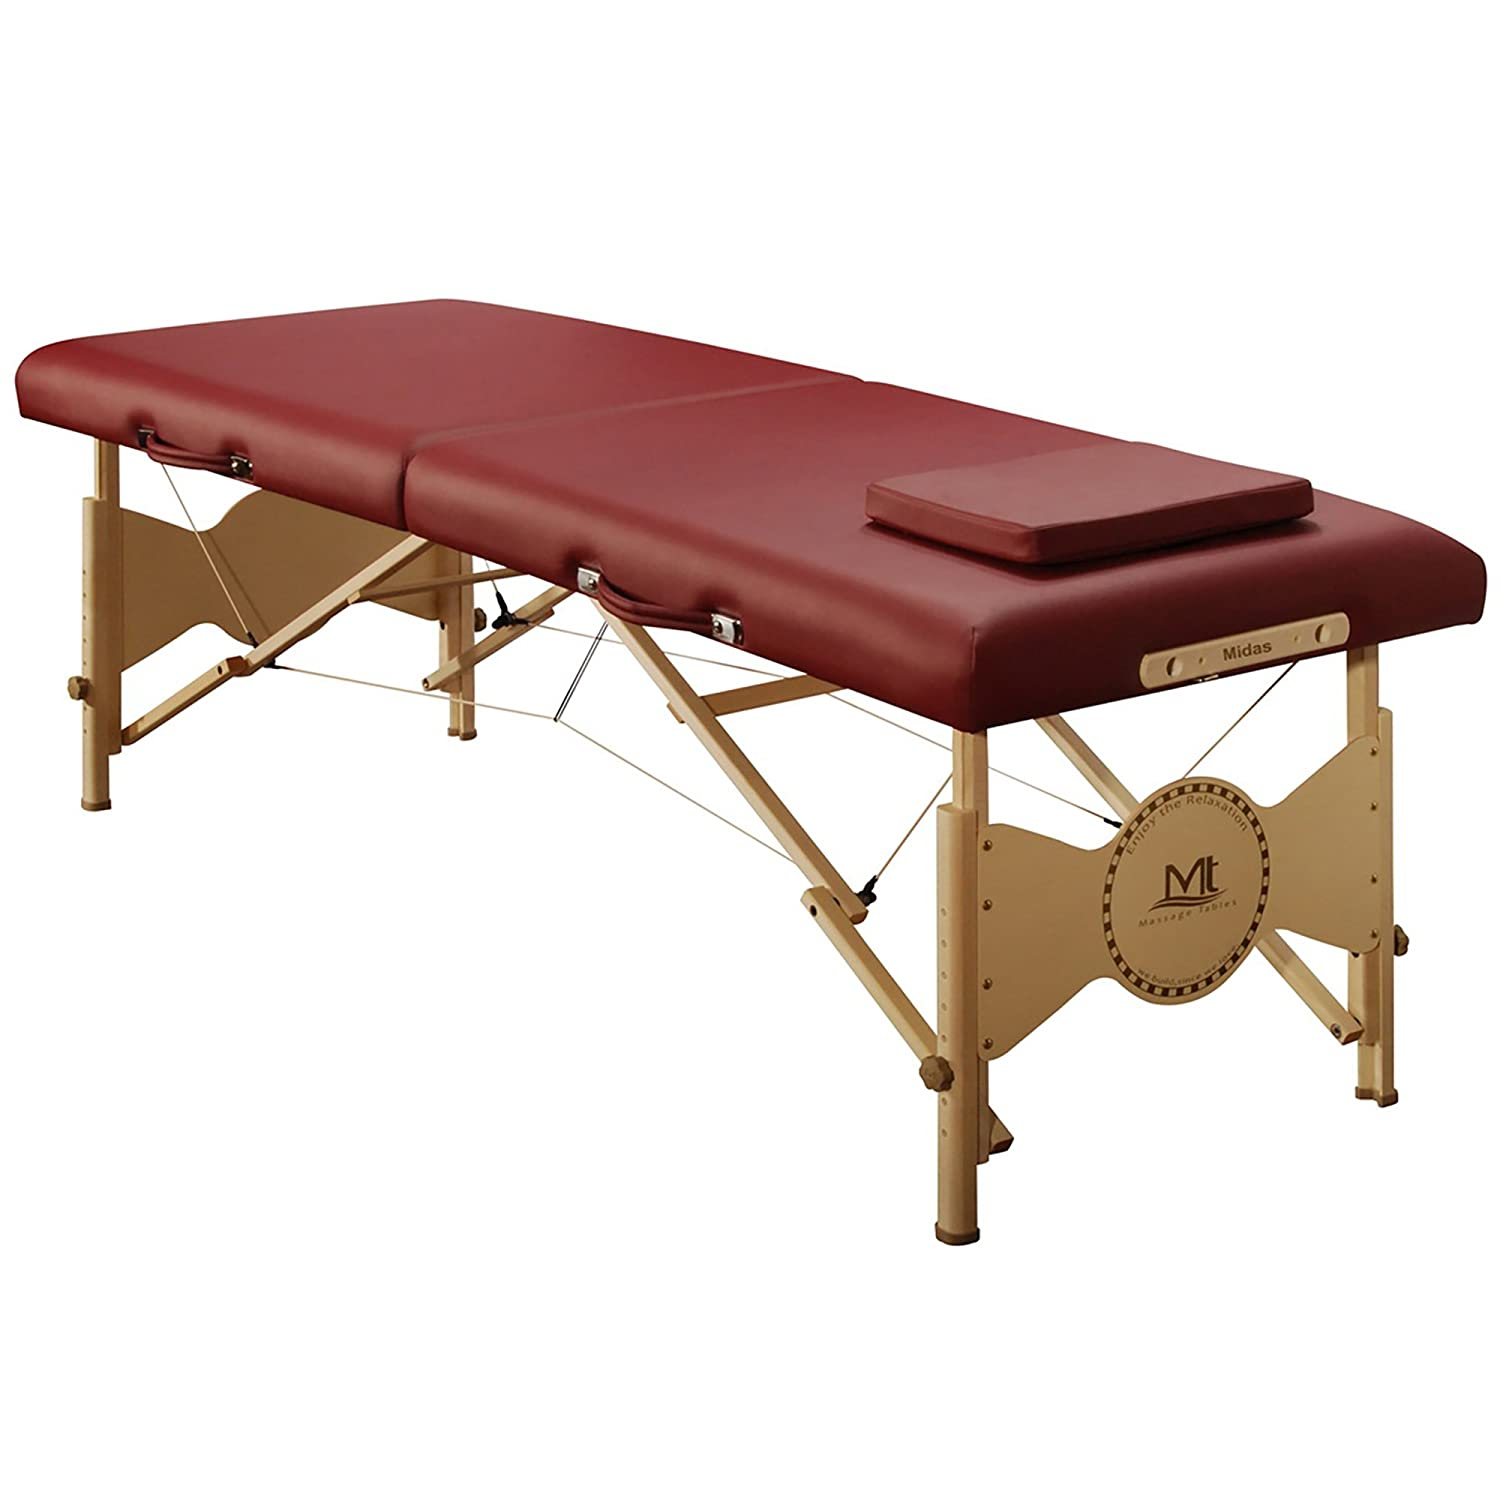 Mt Massage Midas Entry Massage Table Package, Extra Long and Carrying Case Included